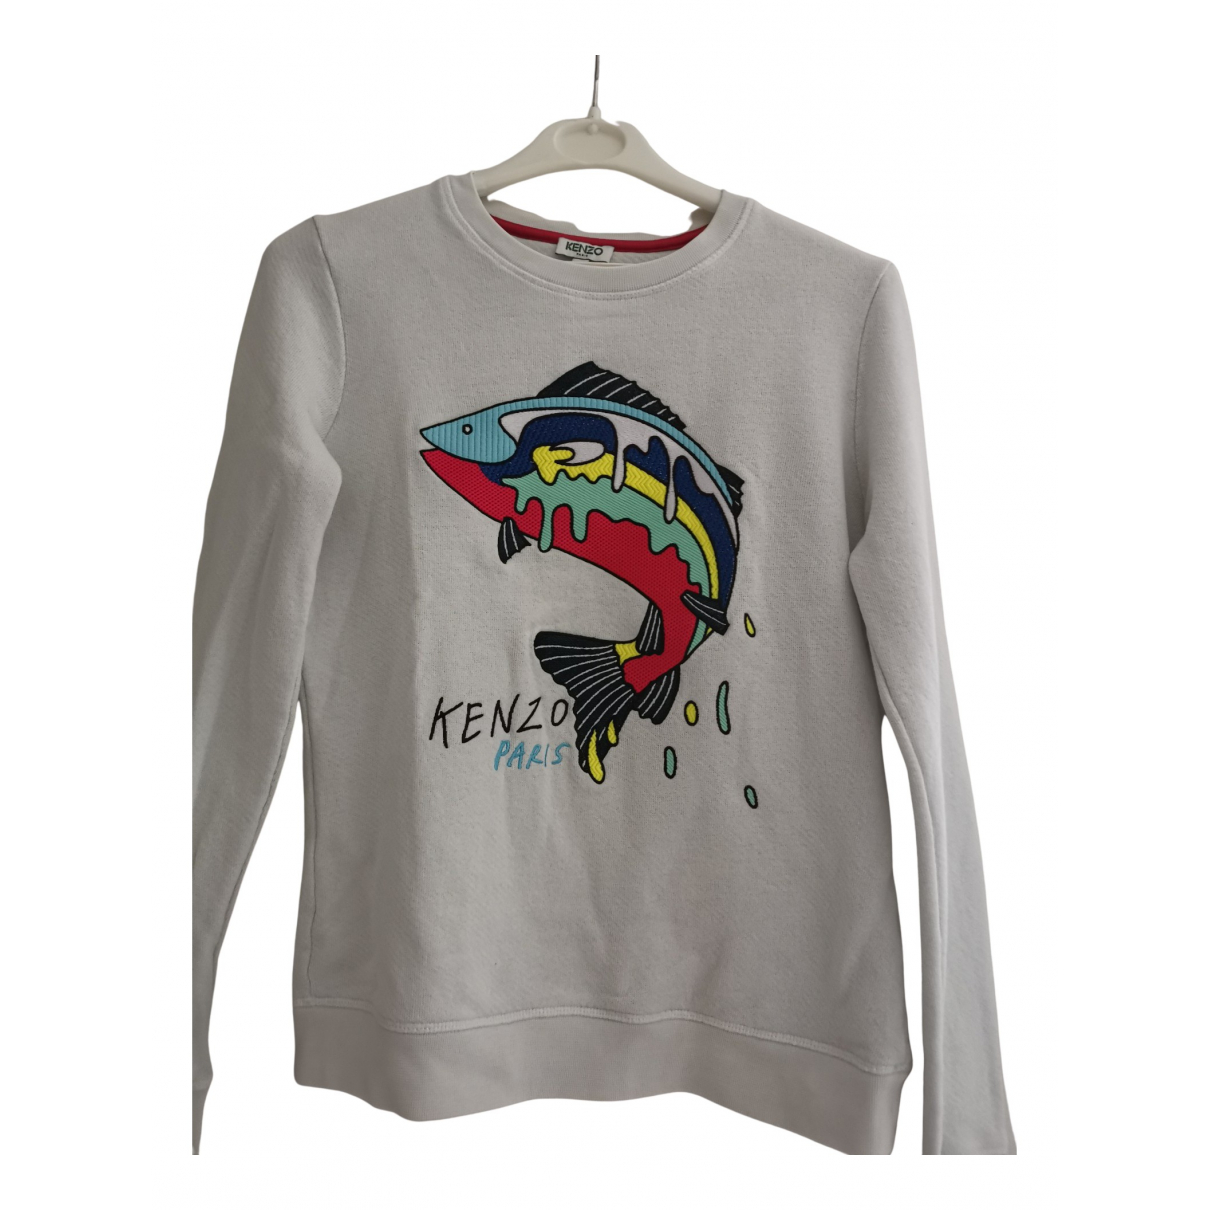 Kenzo N White Cotton Knitwear for Women 36 FR